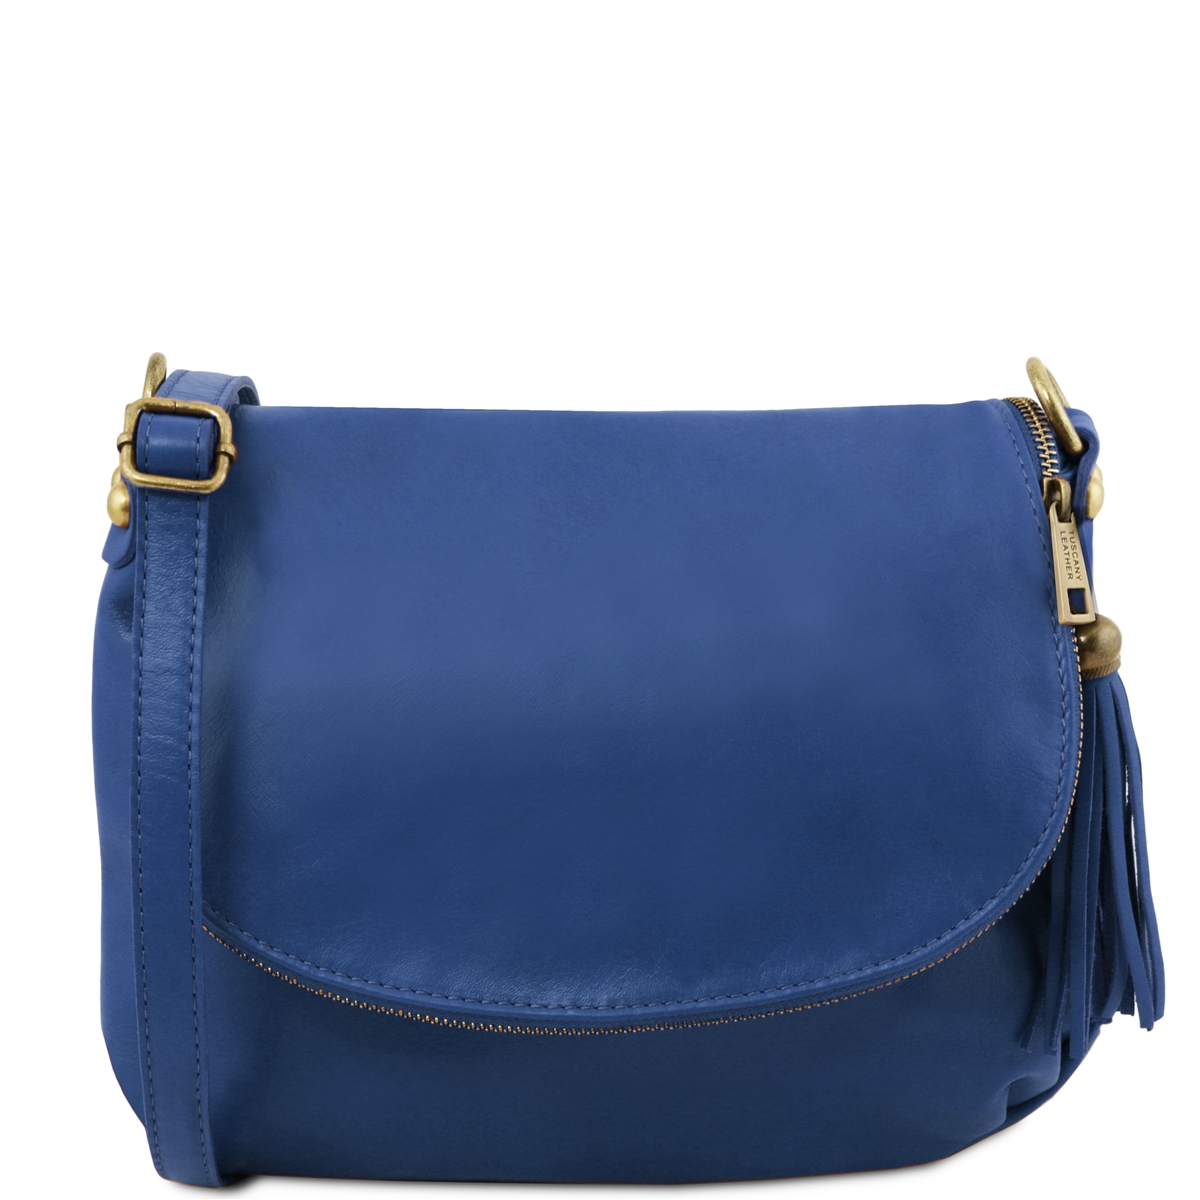 Tuscany Leather TL141223 Small Soft leather shoulder bag - Blue bef78fabbaf2d